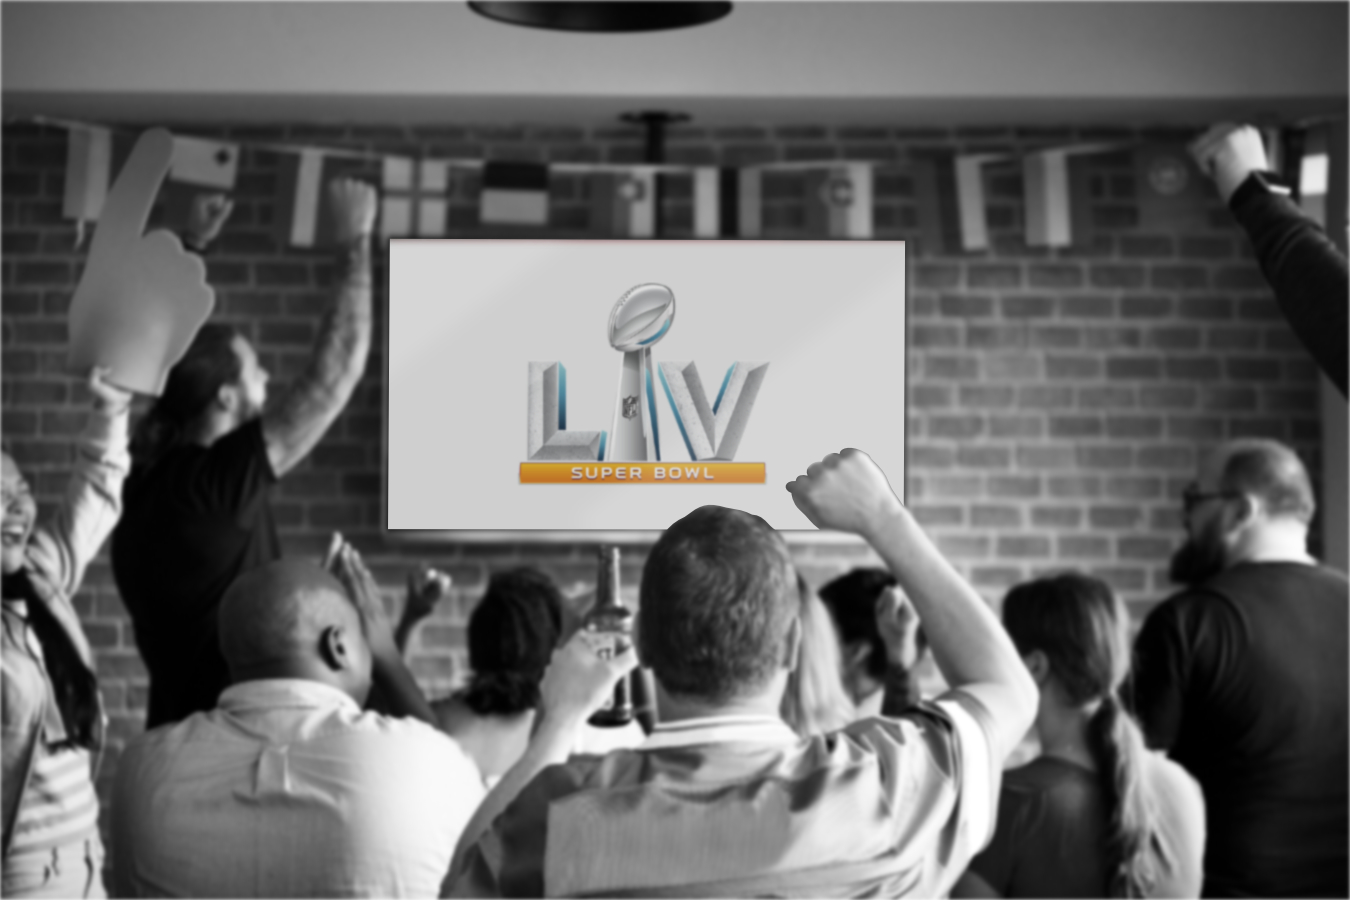 How to watch the Super Bowl in Canada?